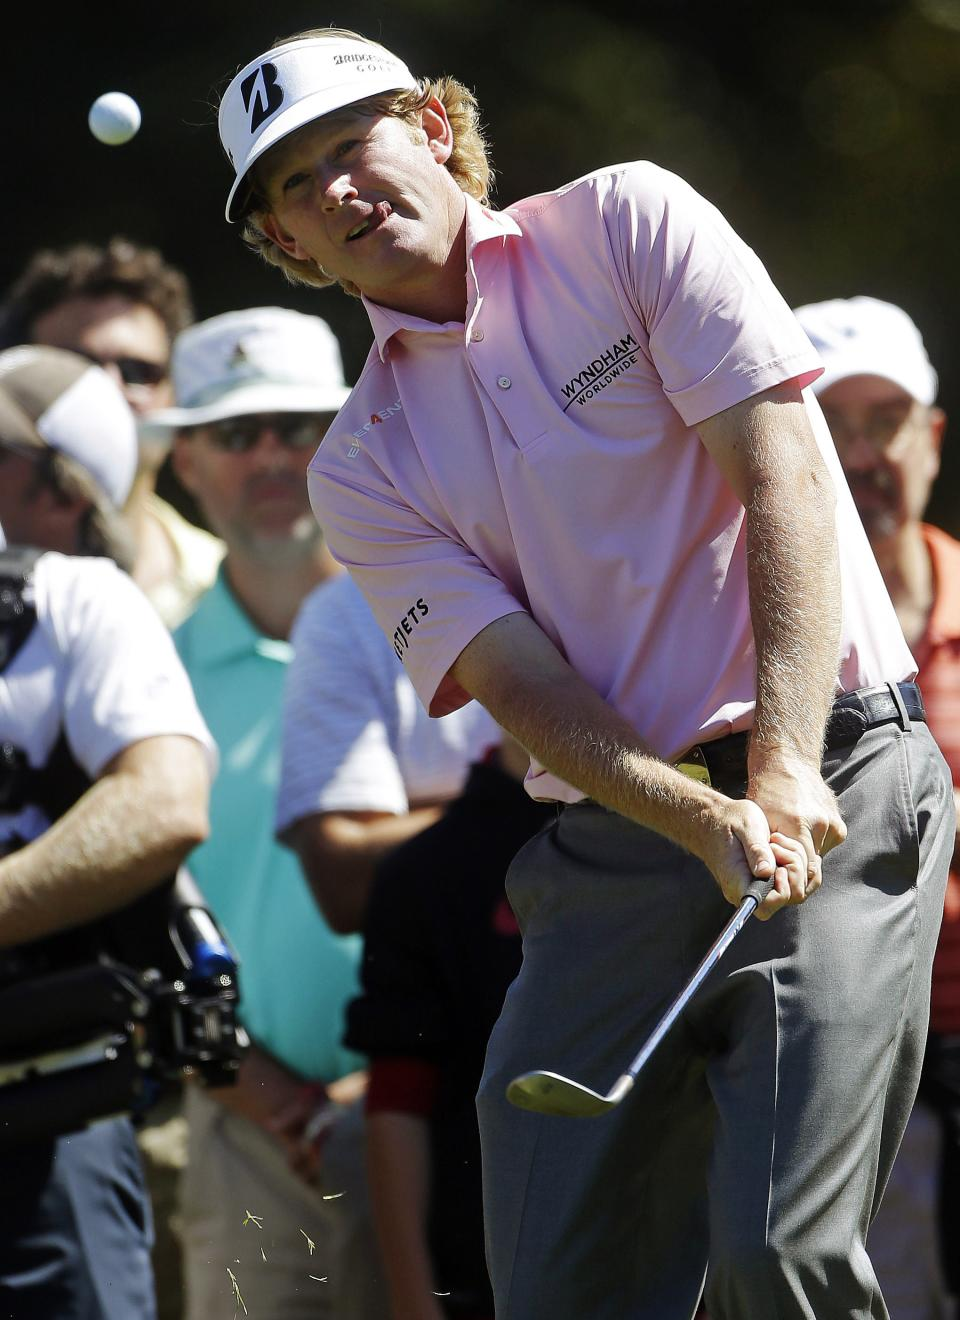 Brandt Snedeker chips to the green on the fourth hole during the final round of play in the Tour Championship golf tournament in Atlanta, Sunday, Sept. 23, 2012. (AP Photo/John Bazemore)